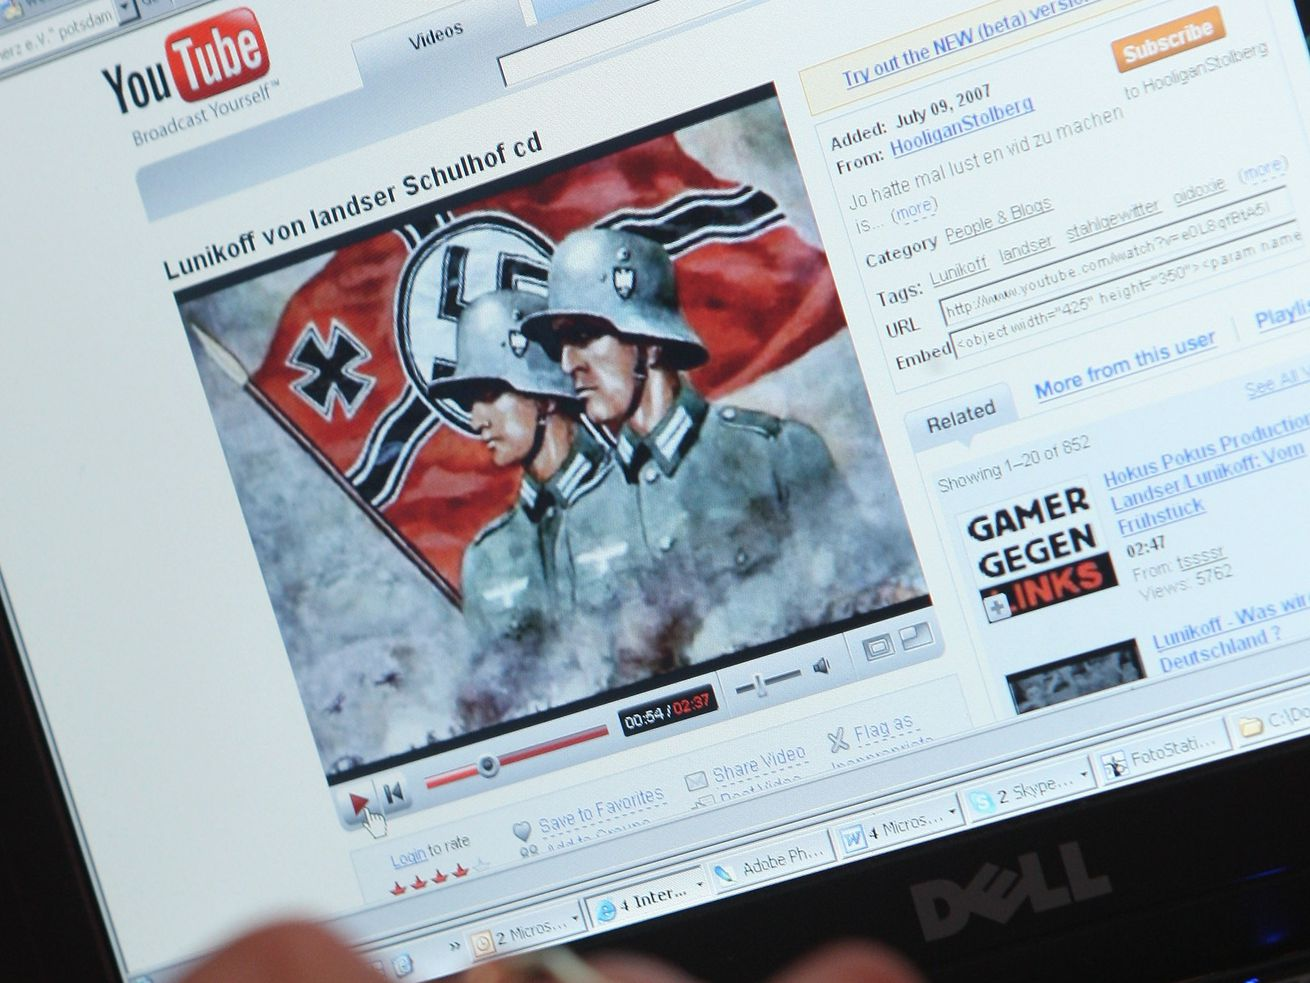 YouTube is banning supremacist content from its platform.